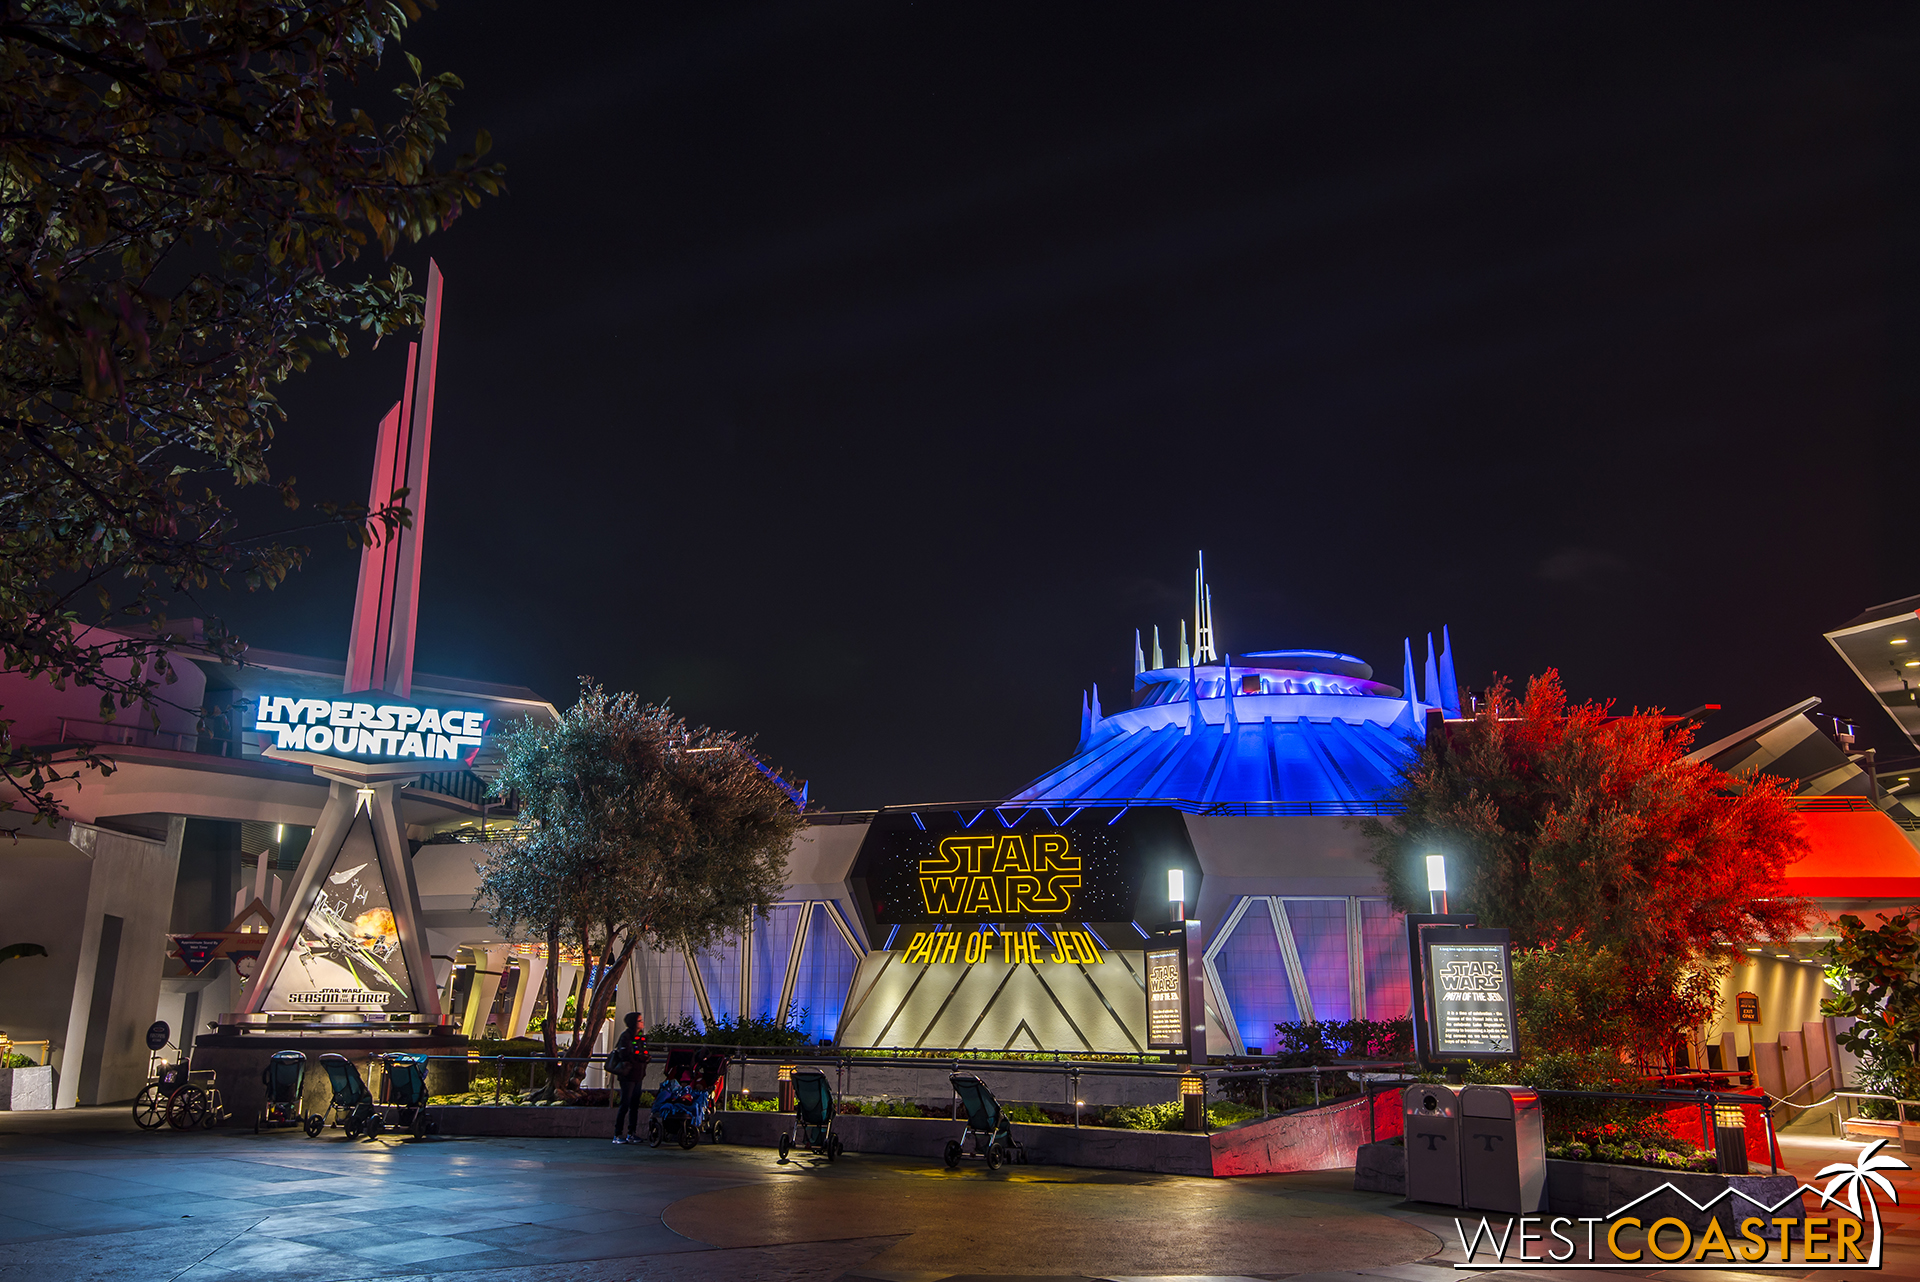 Space Mountain has been transformed into Hyperspace Mountain (get it??).